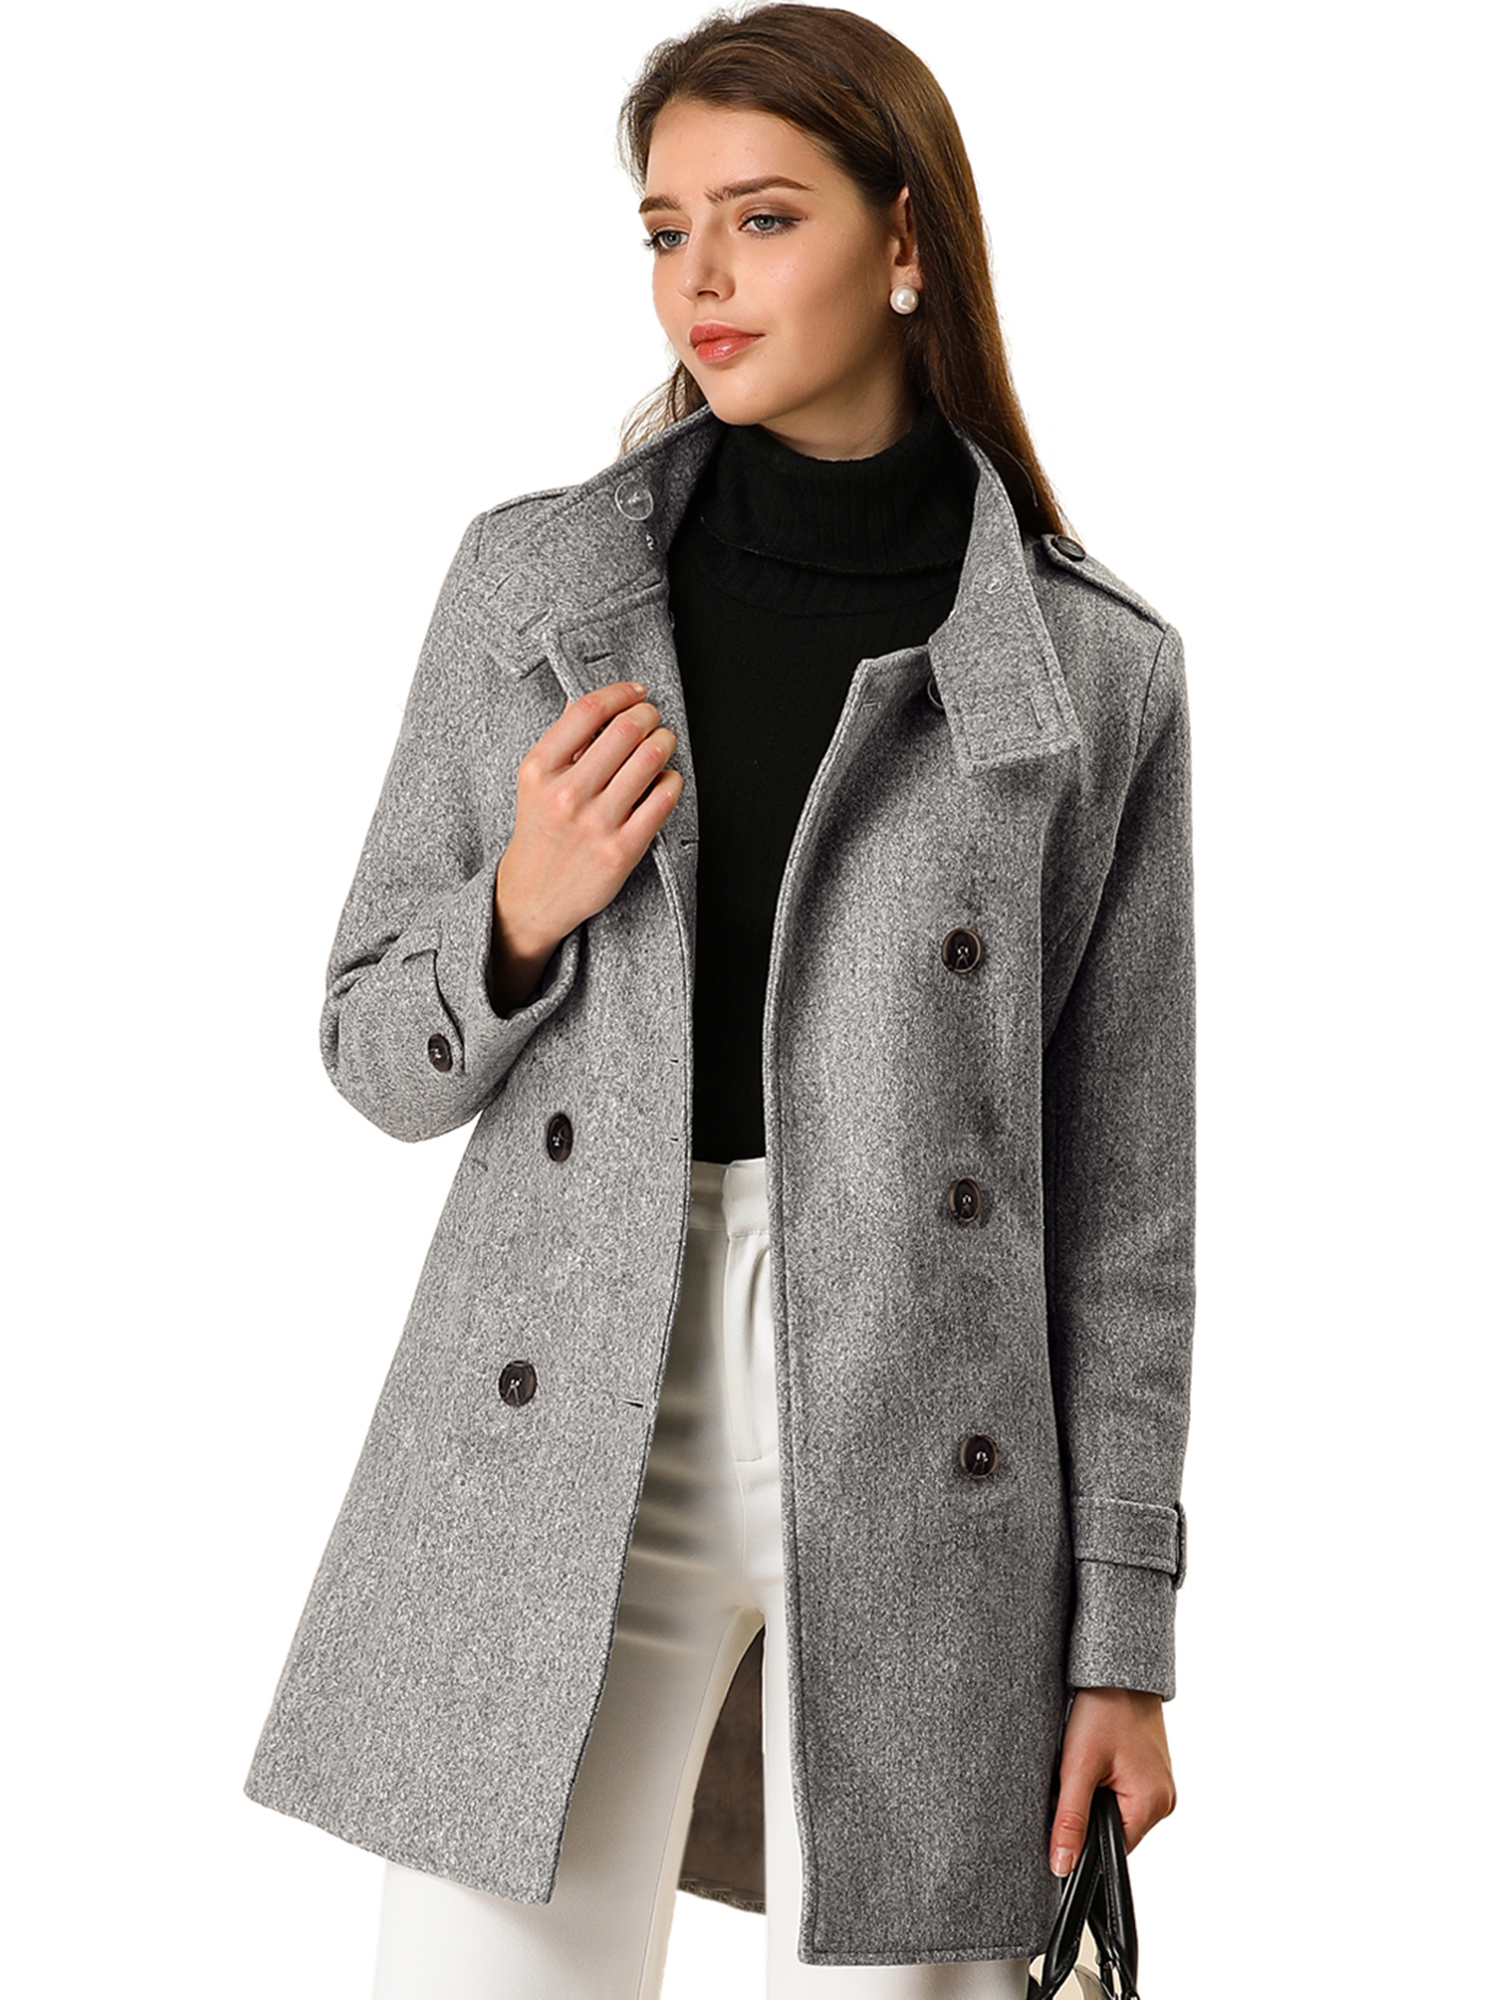 Women's Winter Stand Collar Double Breasted Outwear Trench Coat Gray XS